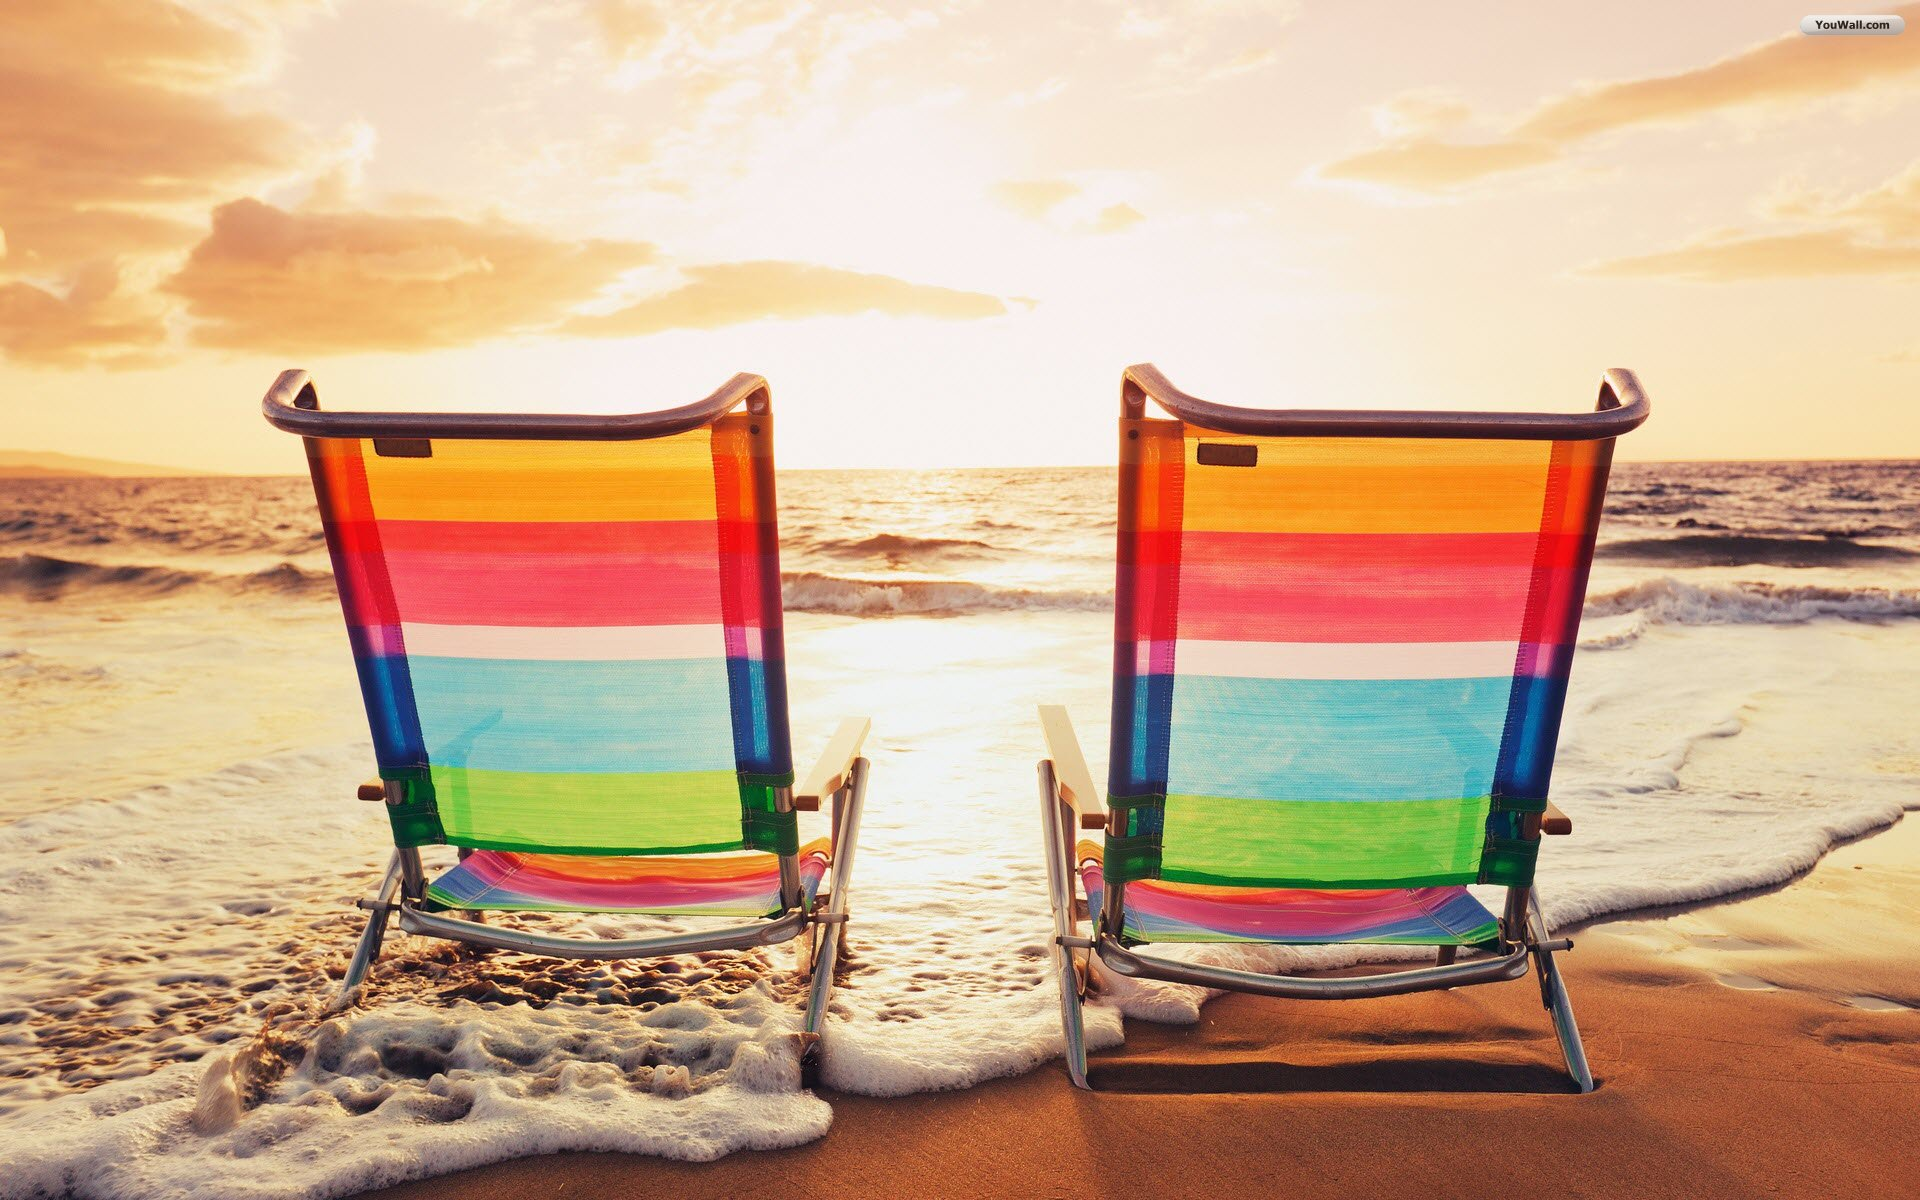 Beach chair and umbrella wallpaper - Youwall Beach Chairs Wallpaper Wallpaper Wallpapers Free Wallpaper